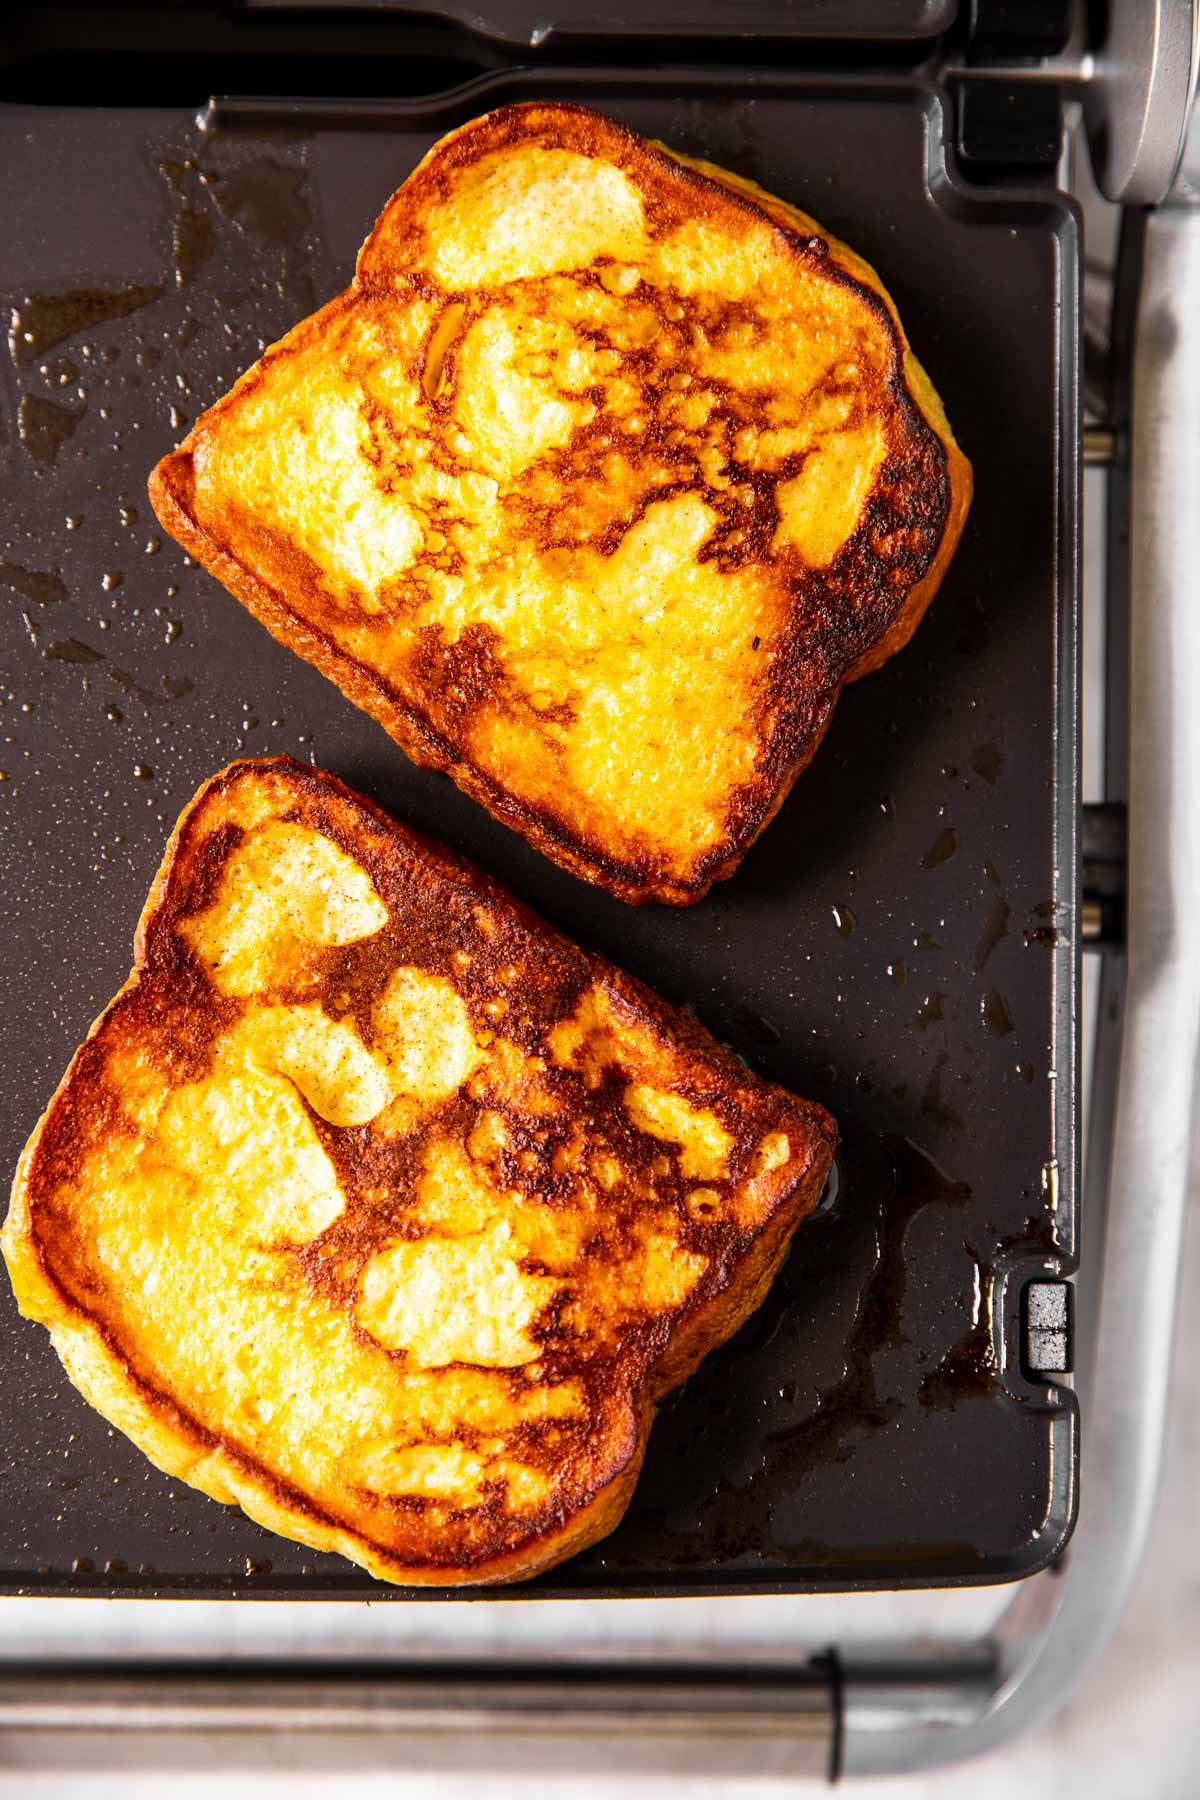 two pieces of cooked French toast on griddle